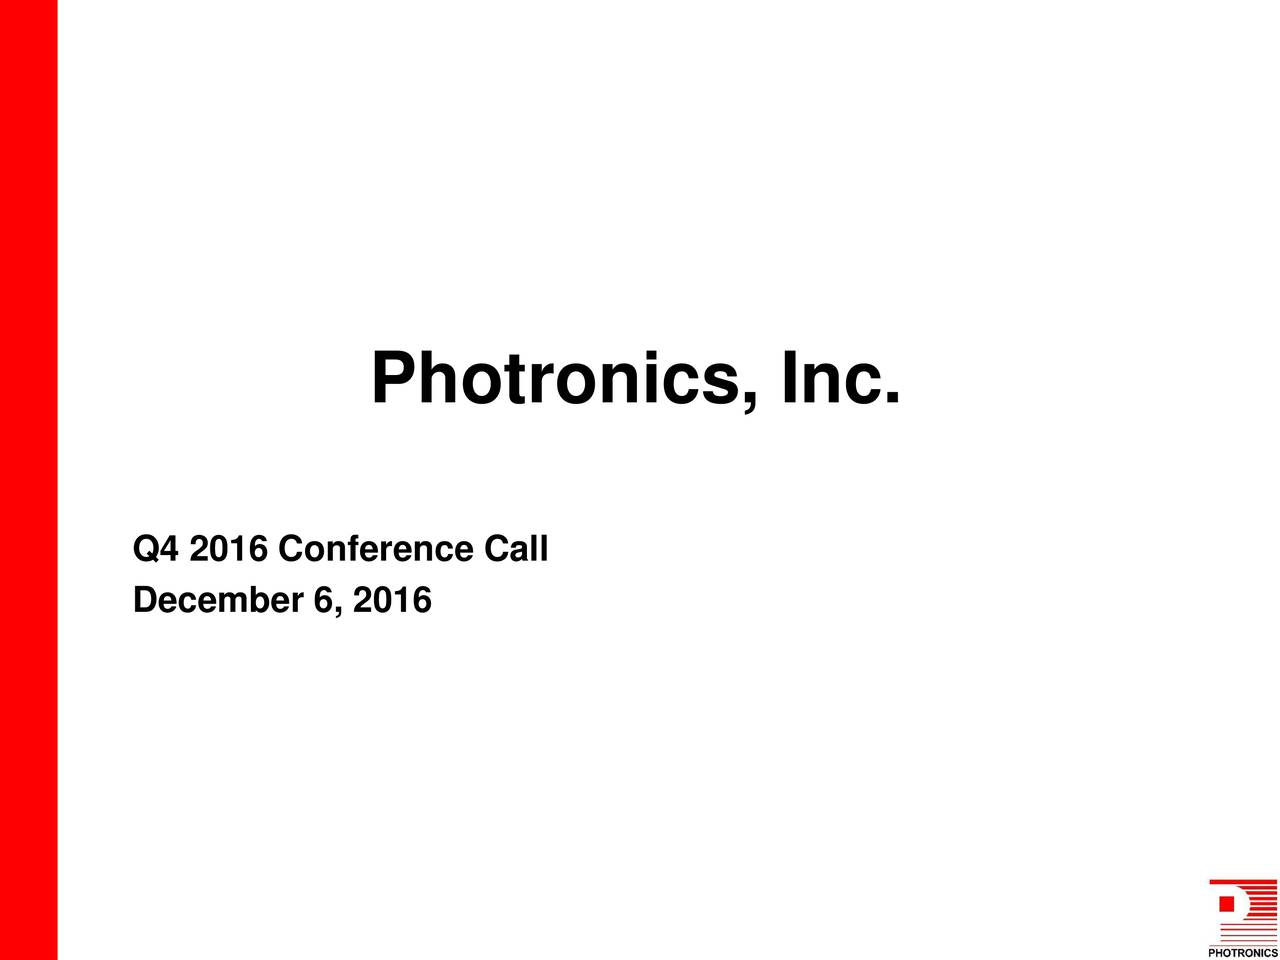 Q4 2016 Conference Call December 6, 2016